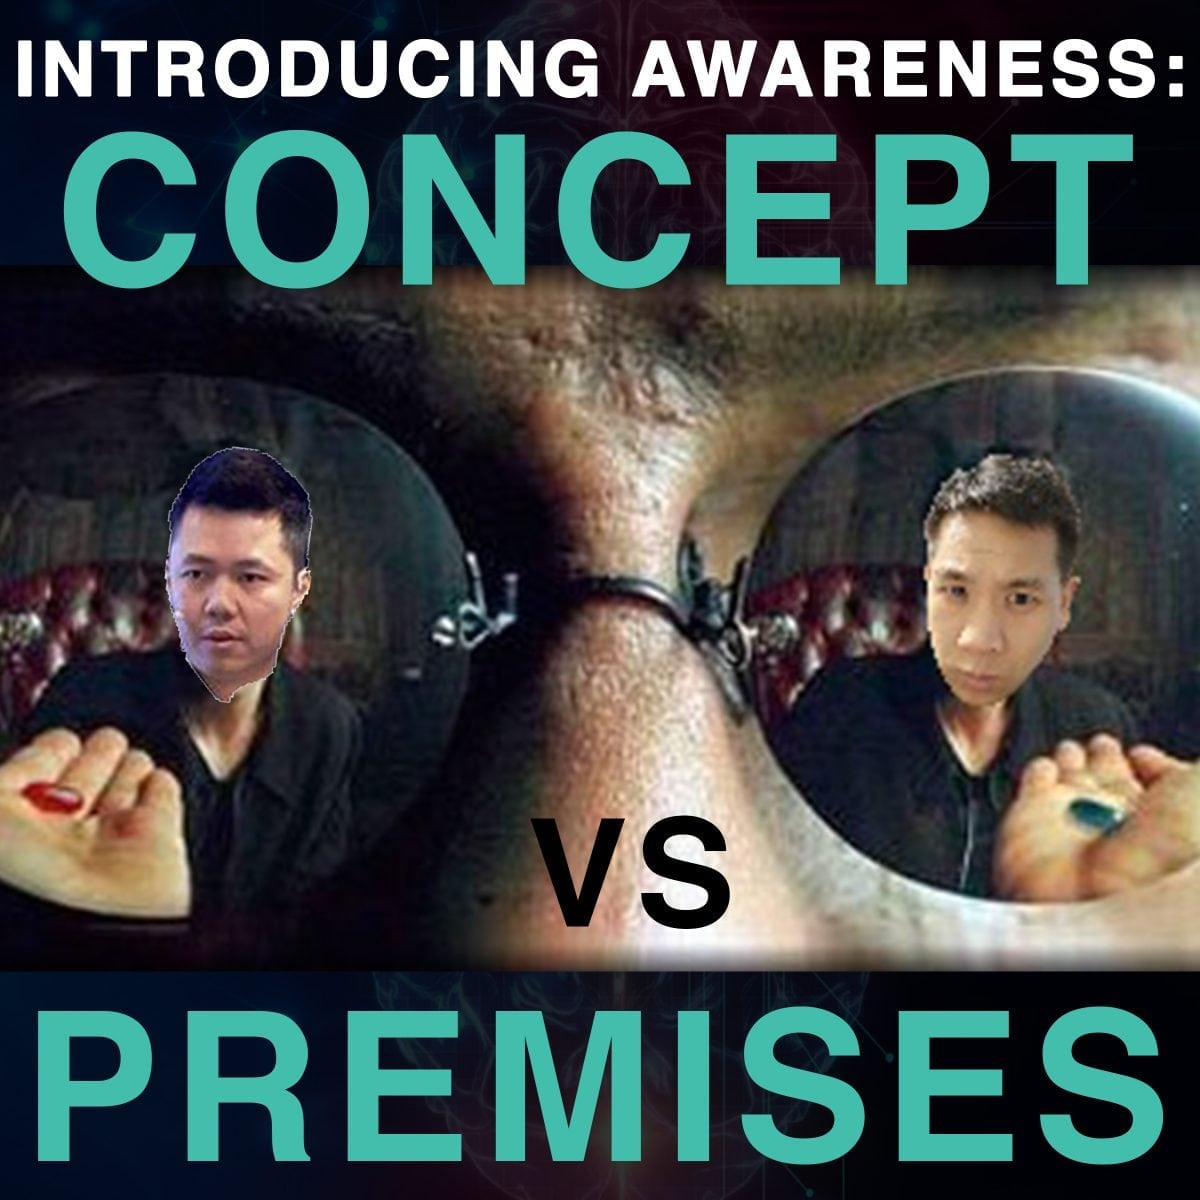 Introducing Awareness: Concept vs Premises